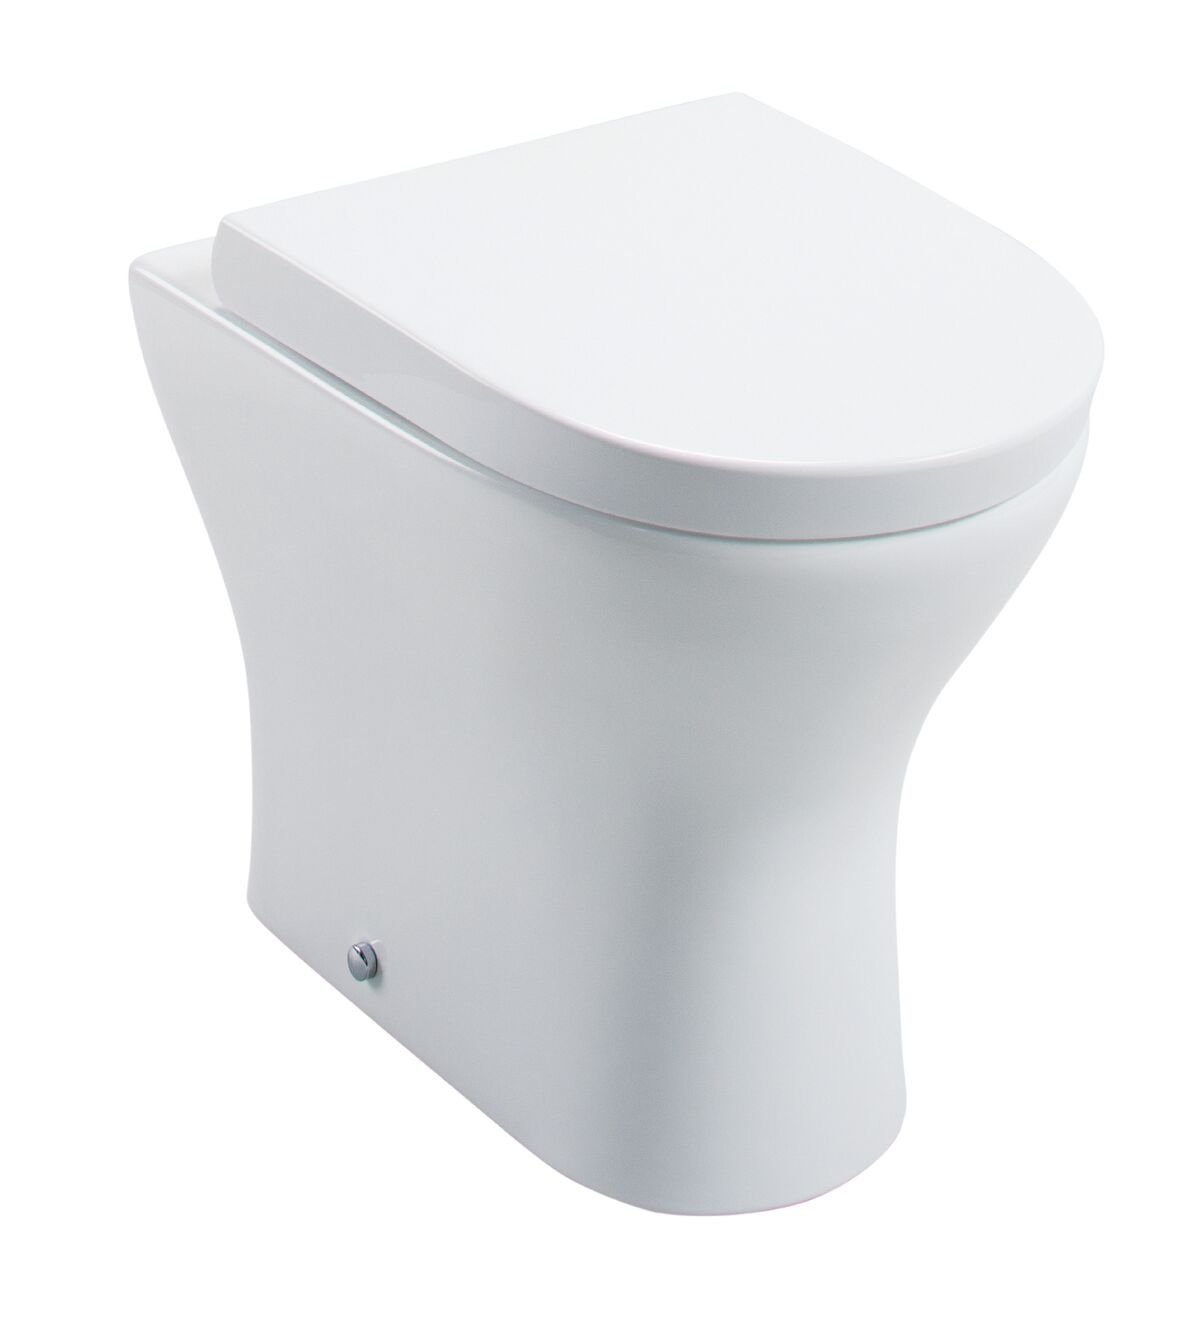 Cassellie Spek Back to Wall Toilet - Quick Release Wrapover Seat